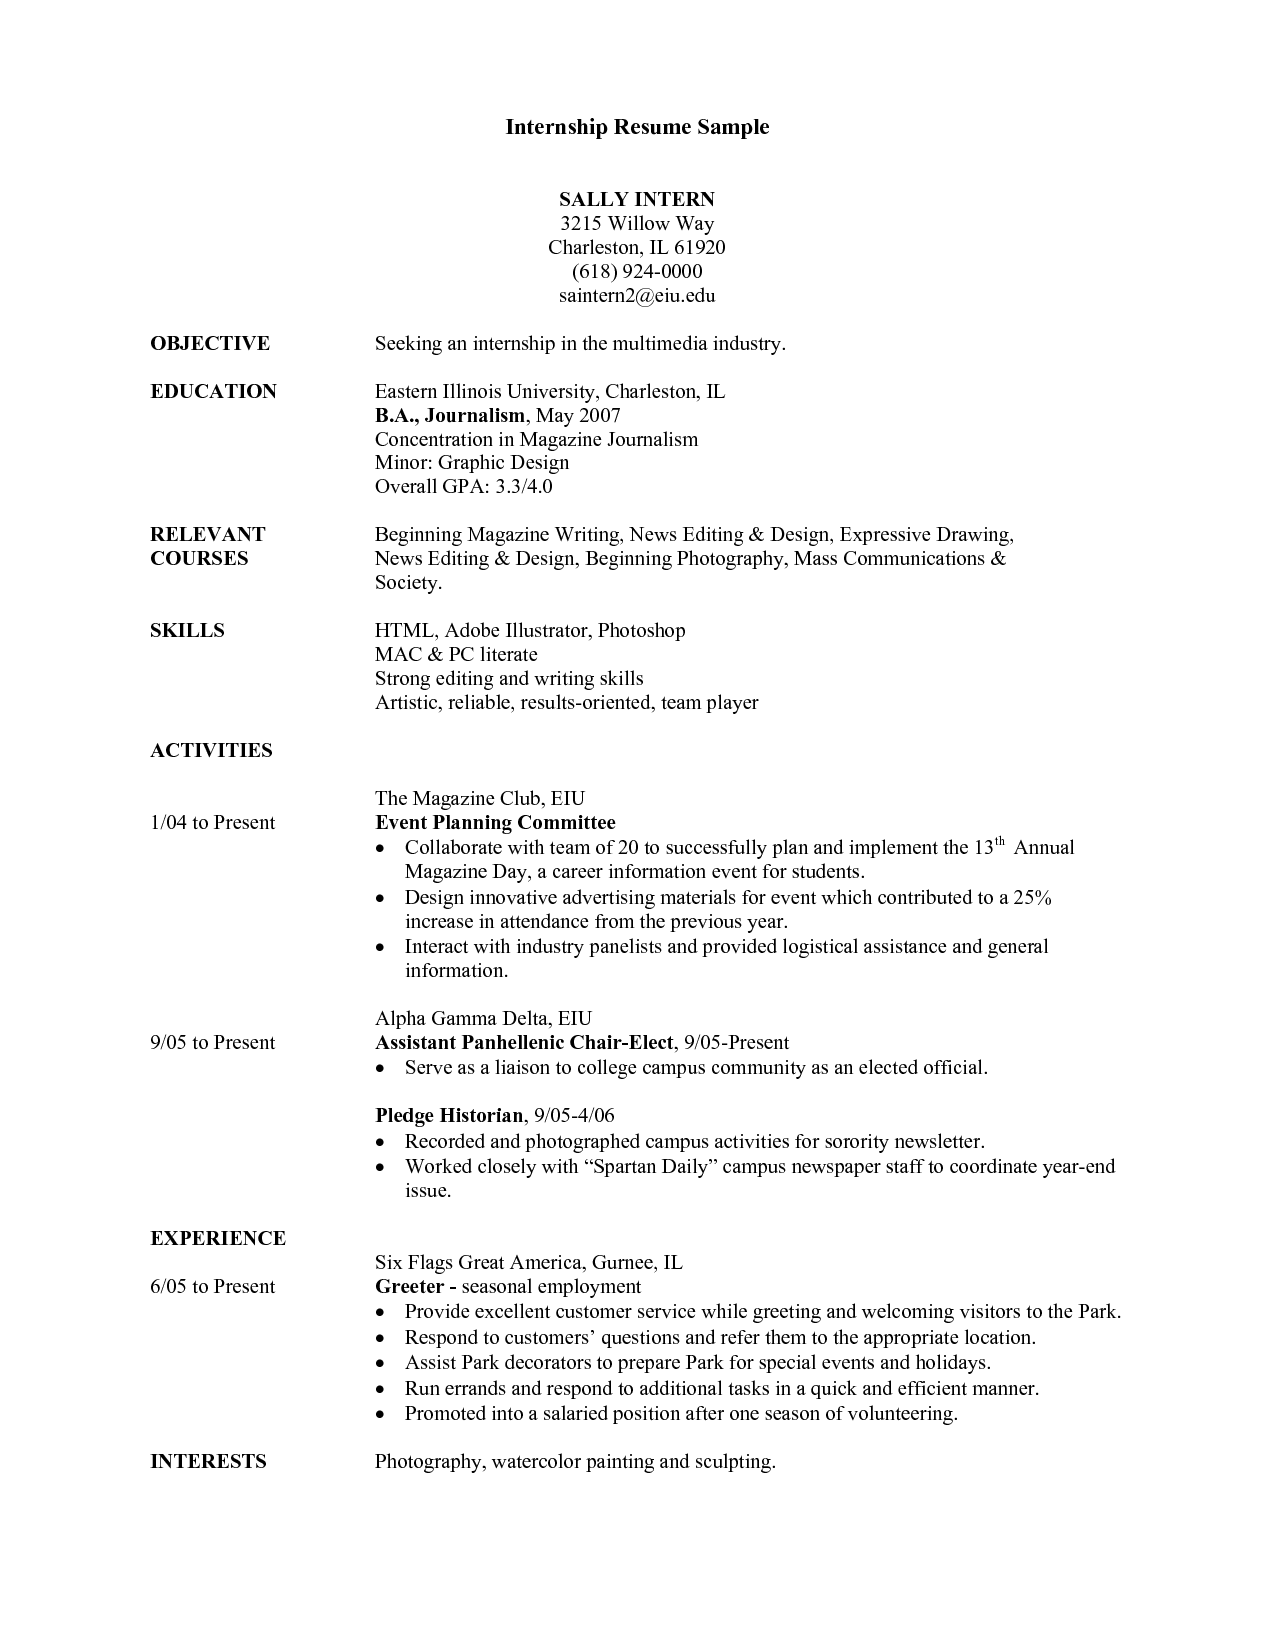 College Internship Resume Samples